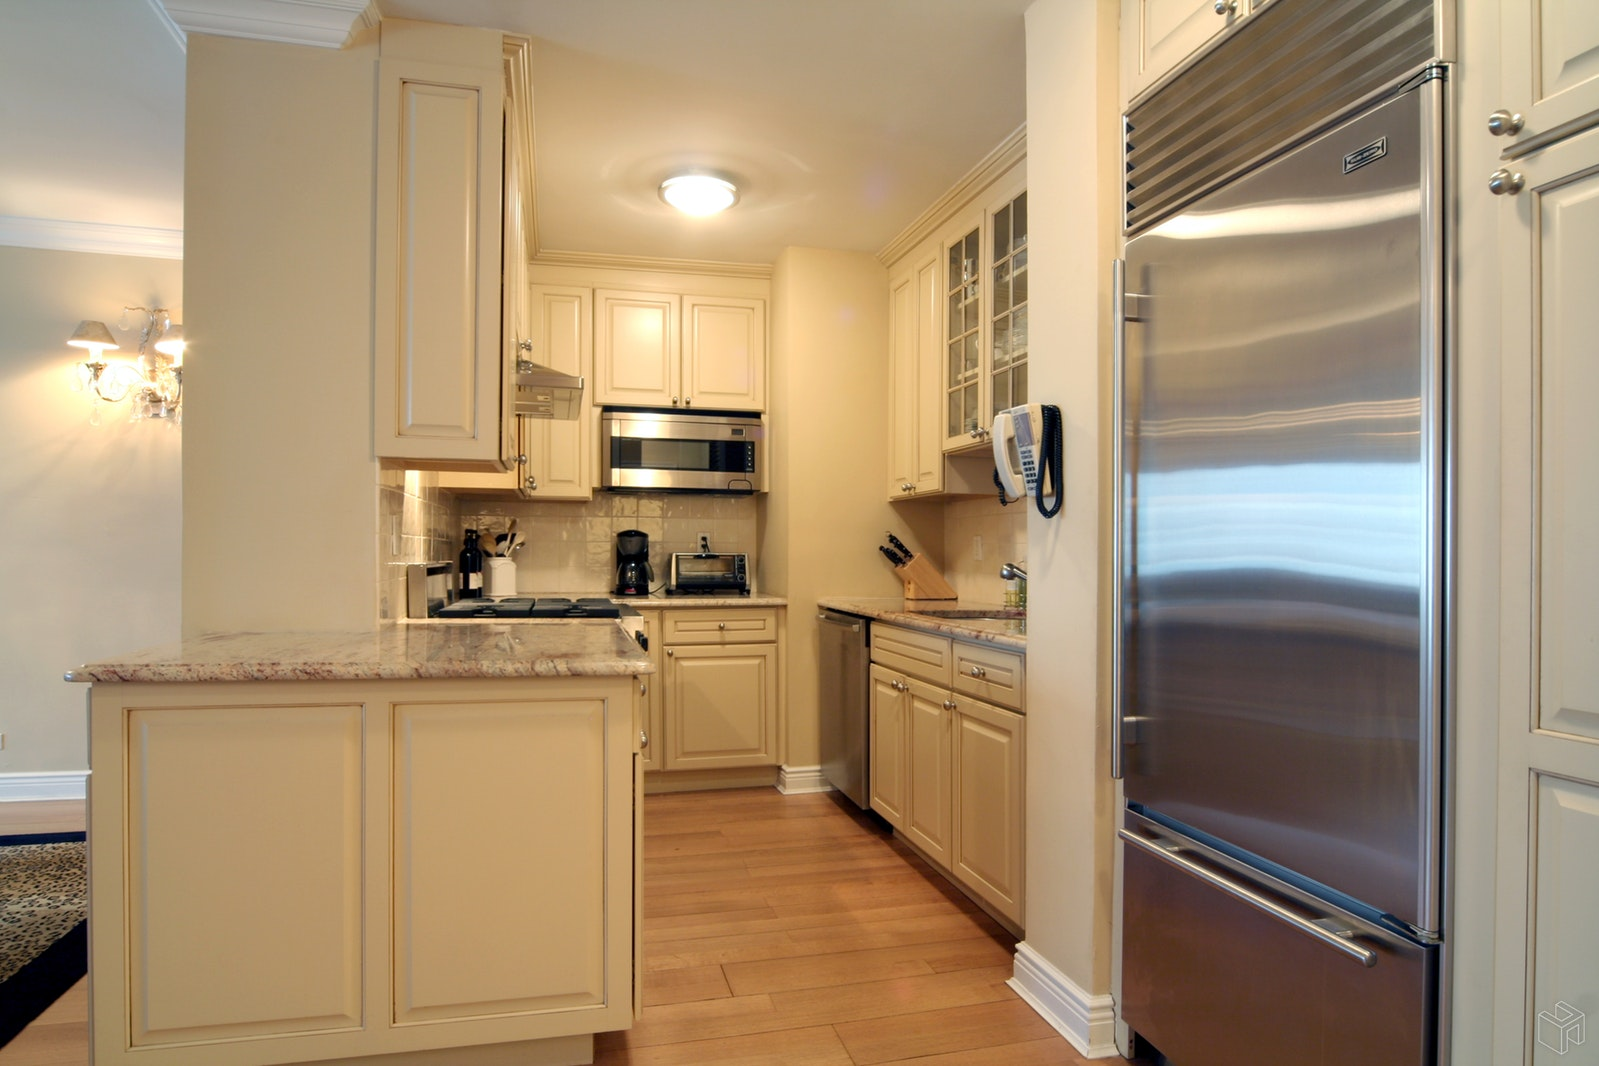 303 East 57th Street 9f, Midtown East, NYC, 10022, $590,000, Property For Sale, Halstead Real Estate, Photo 2